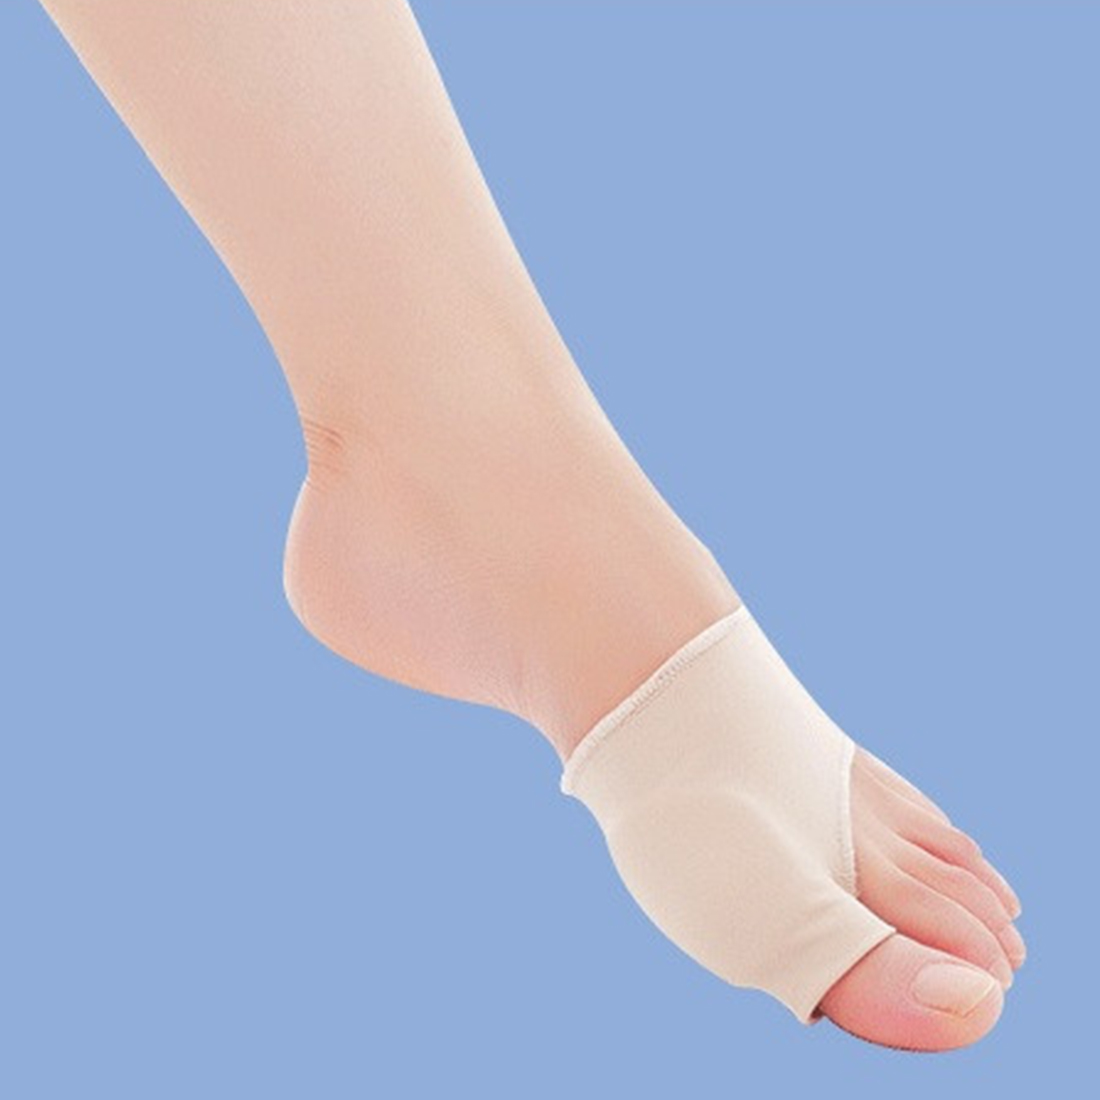 New 2pcs/pair Stretch Nylon Socks Hallux Valgus Guard Cushion Bunion Toe Separator Thumb Valgus Protector Pedicure Cyst